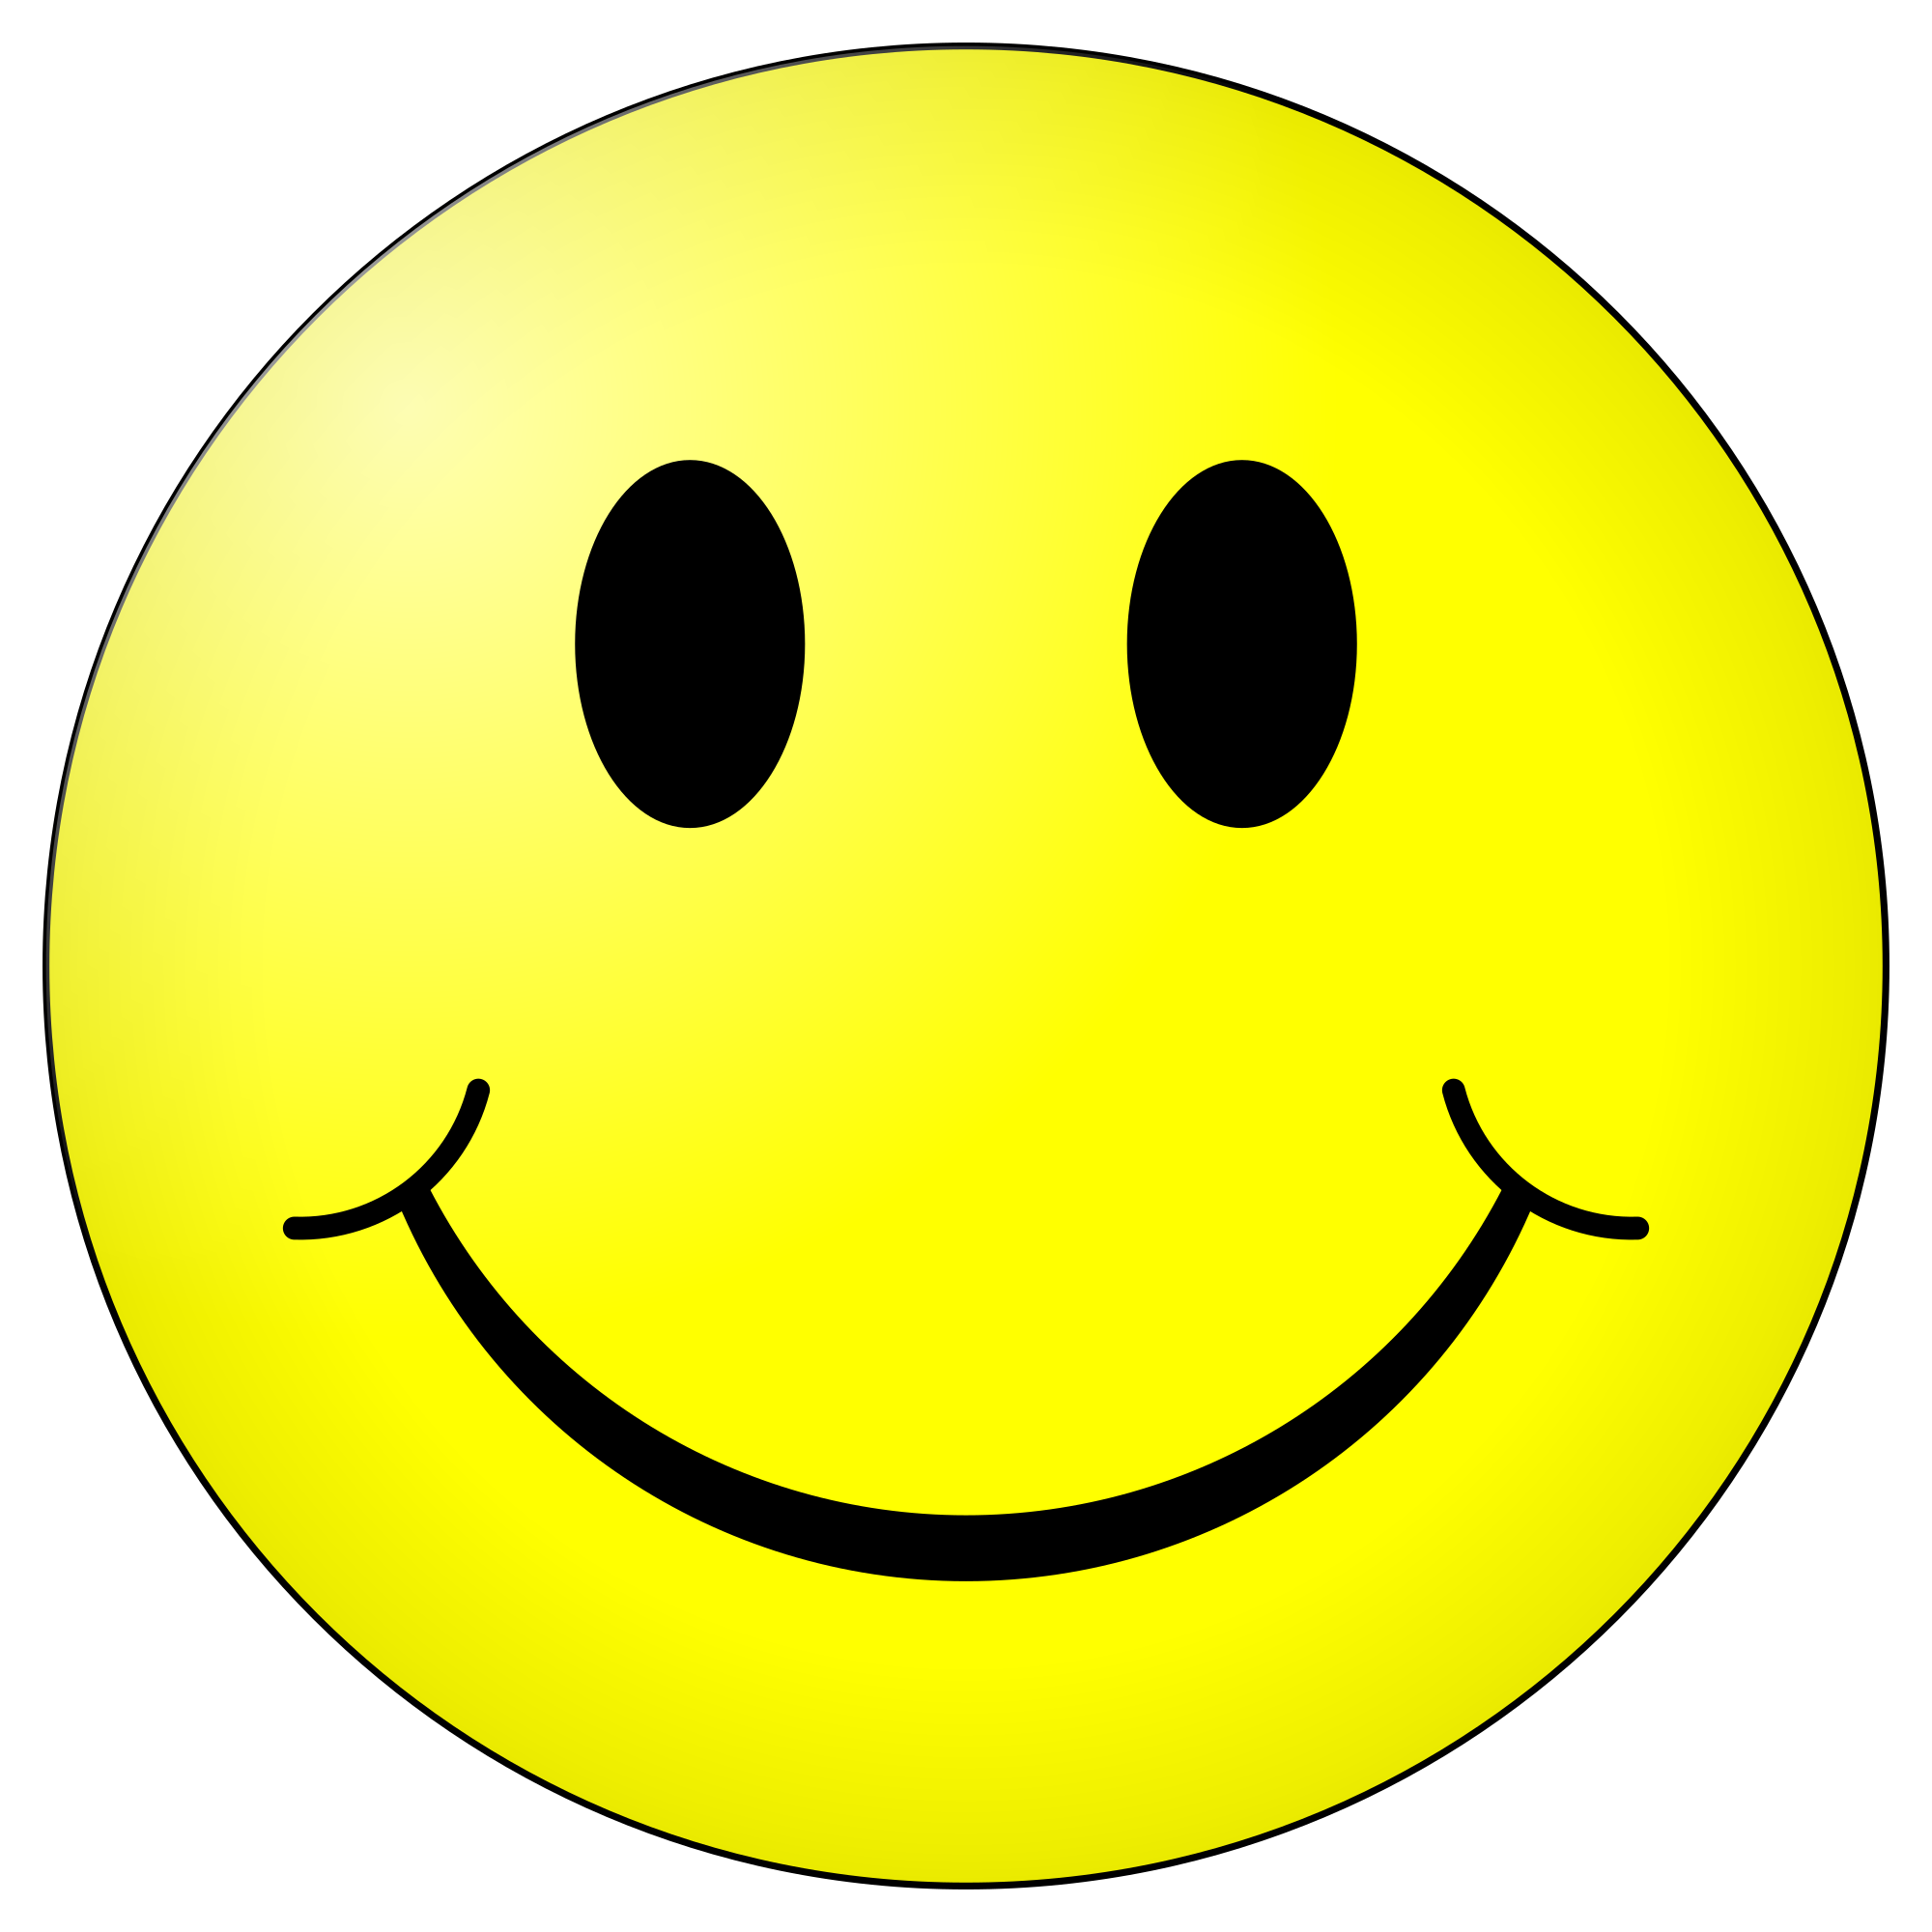 This is an image of a bright yellow  happy smiling Smiley emoji.